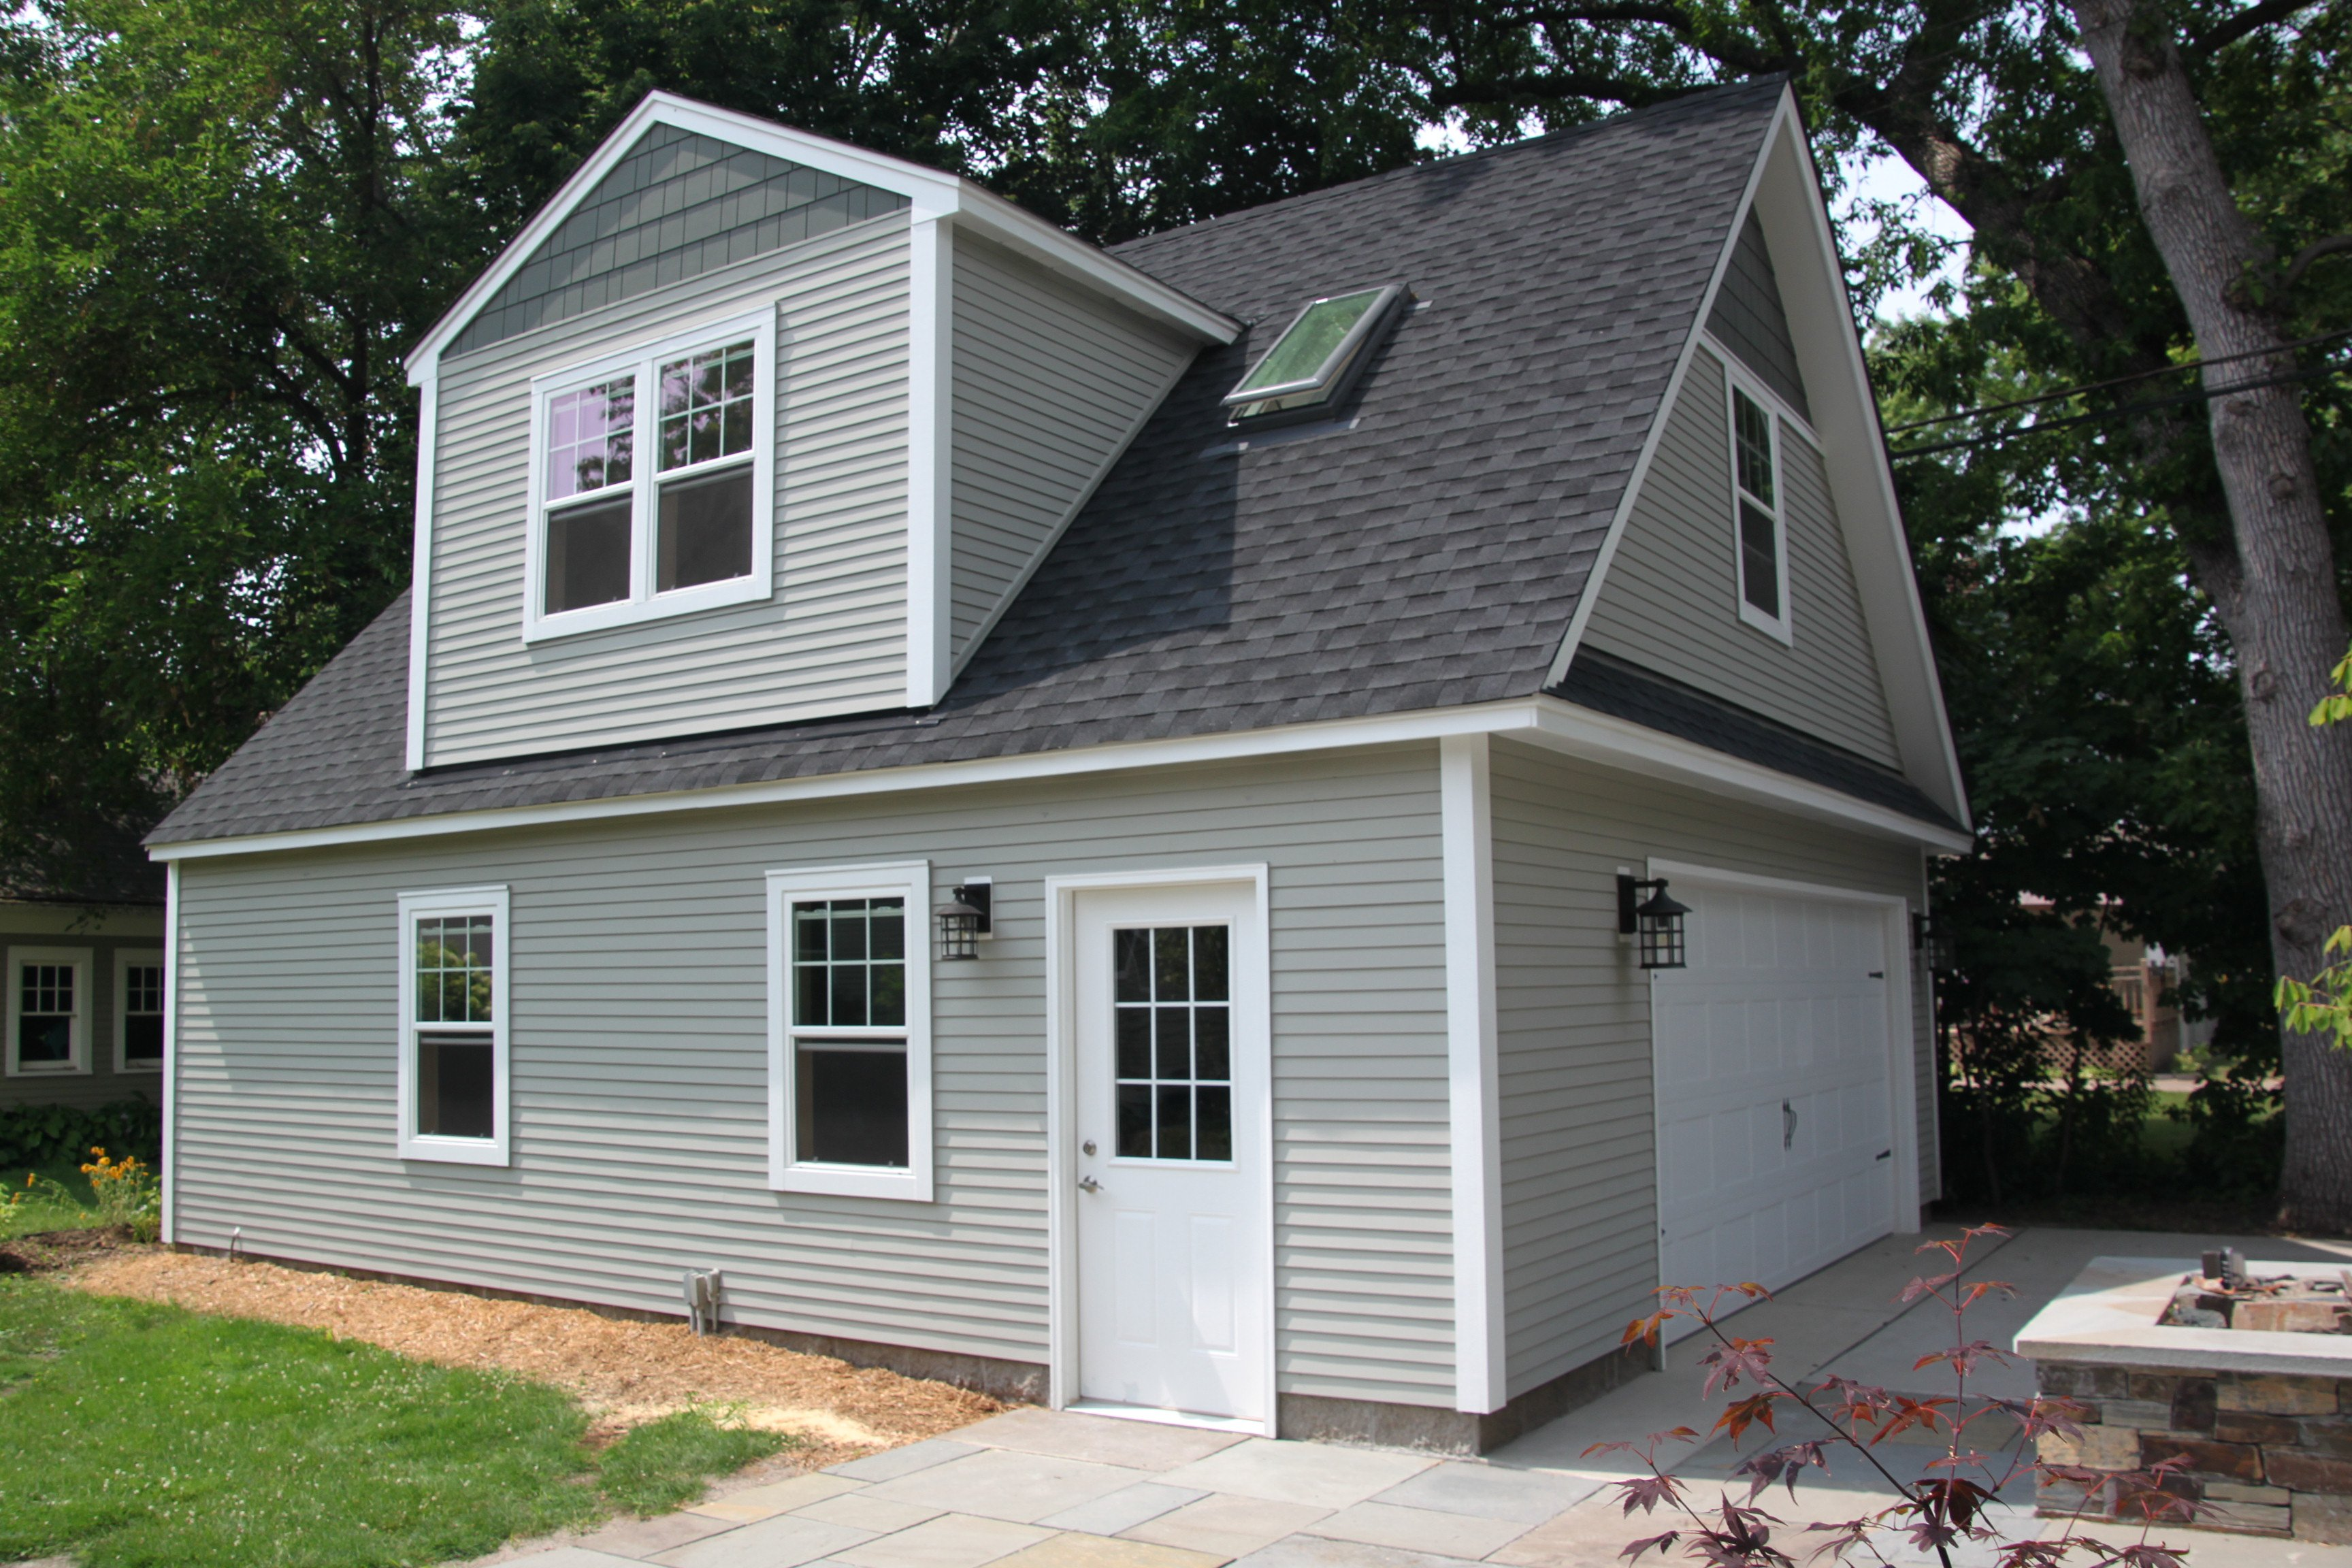 Cost of building a house in mn 2 car 2 story garage for Cost to build a house in mn